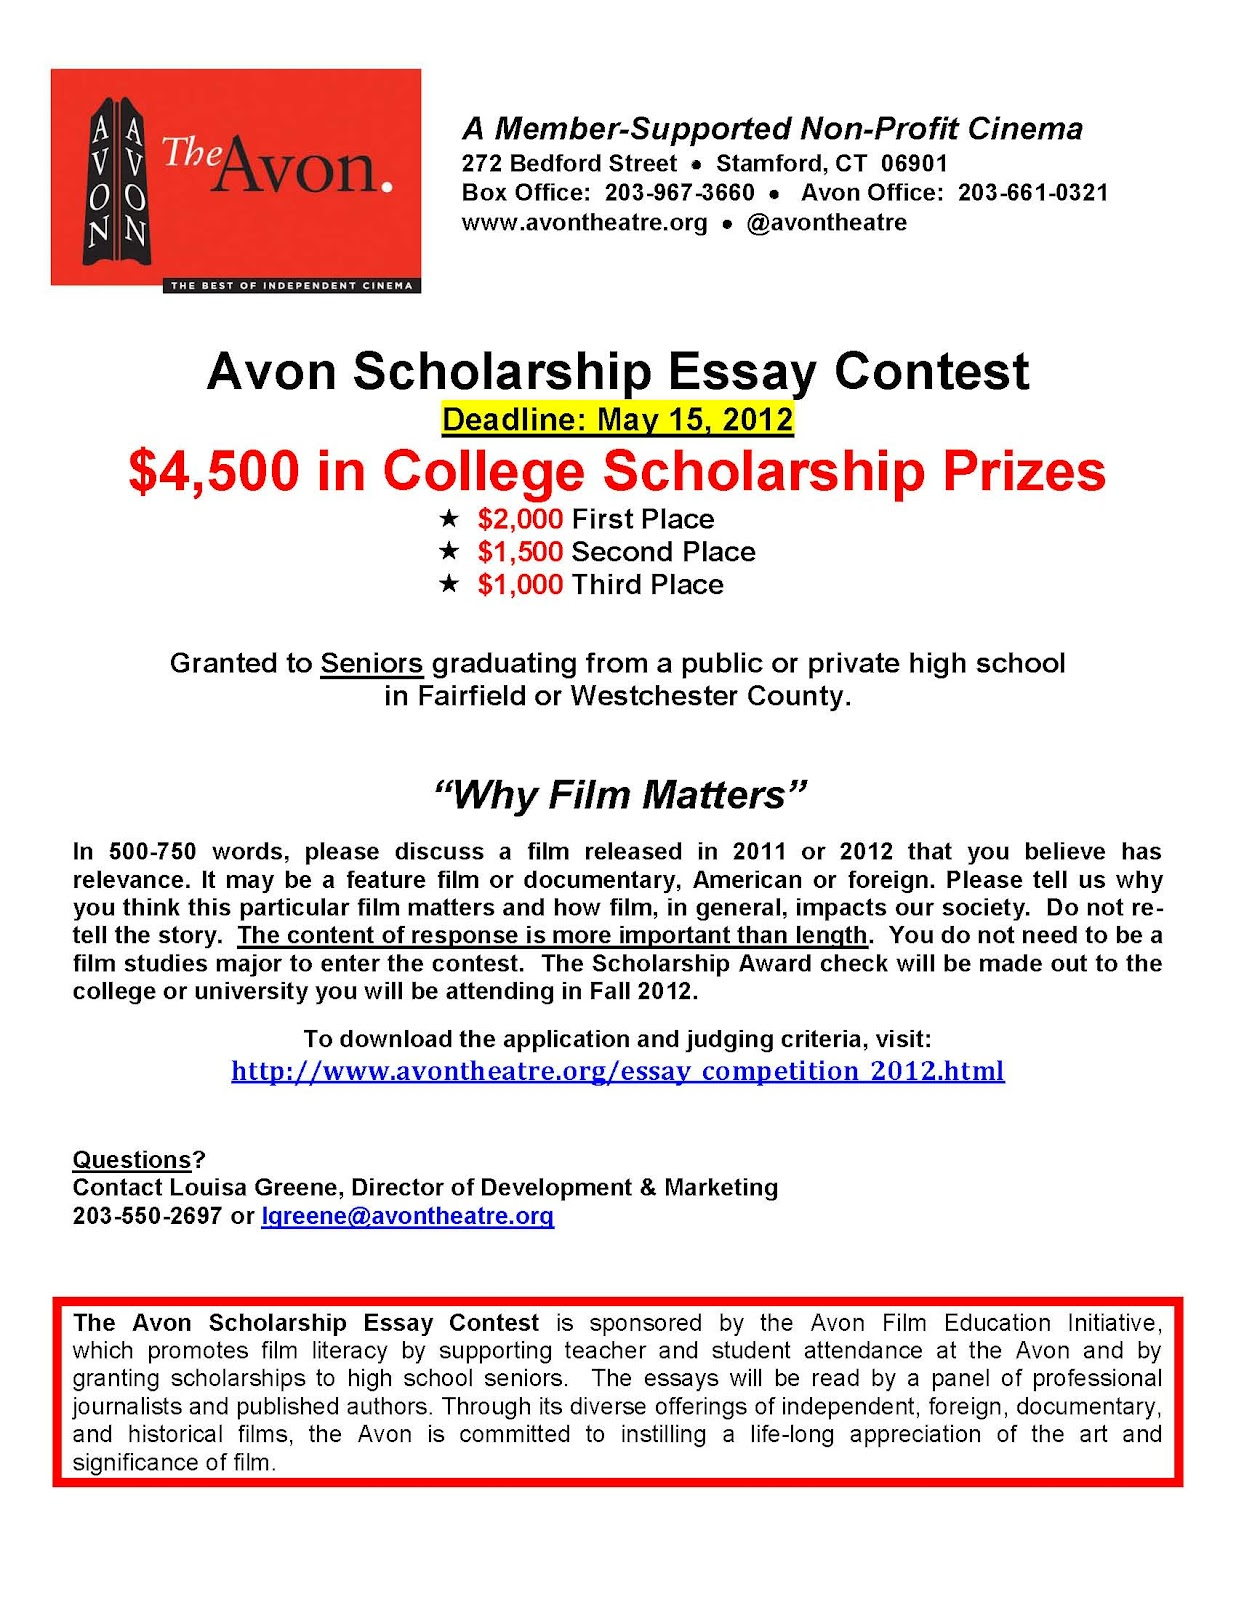 016 Avonscholarshipessaycontest2012flyer Essay Example Shocking Scholarships For High School Students Study Abroad Examples 2018 Bachelors And Masters Full